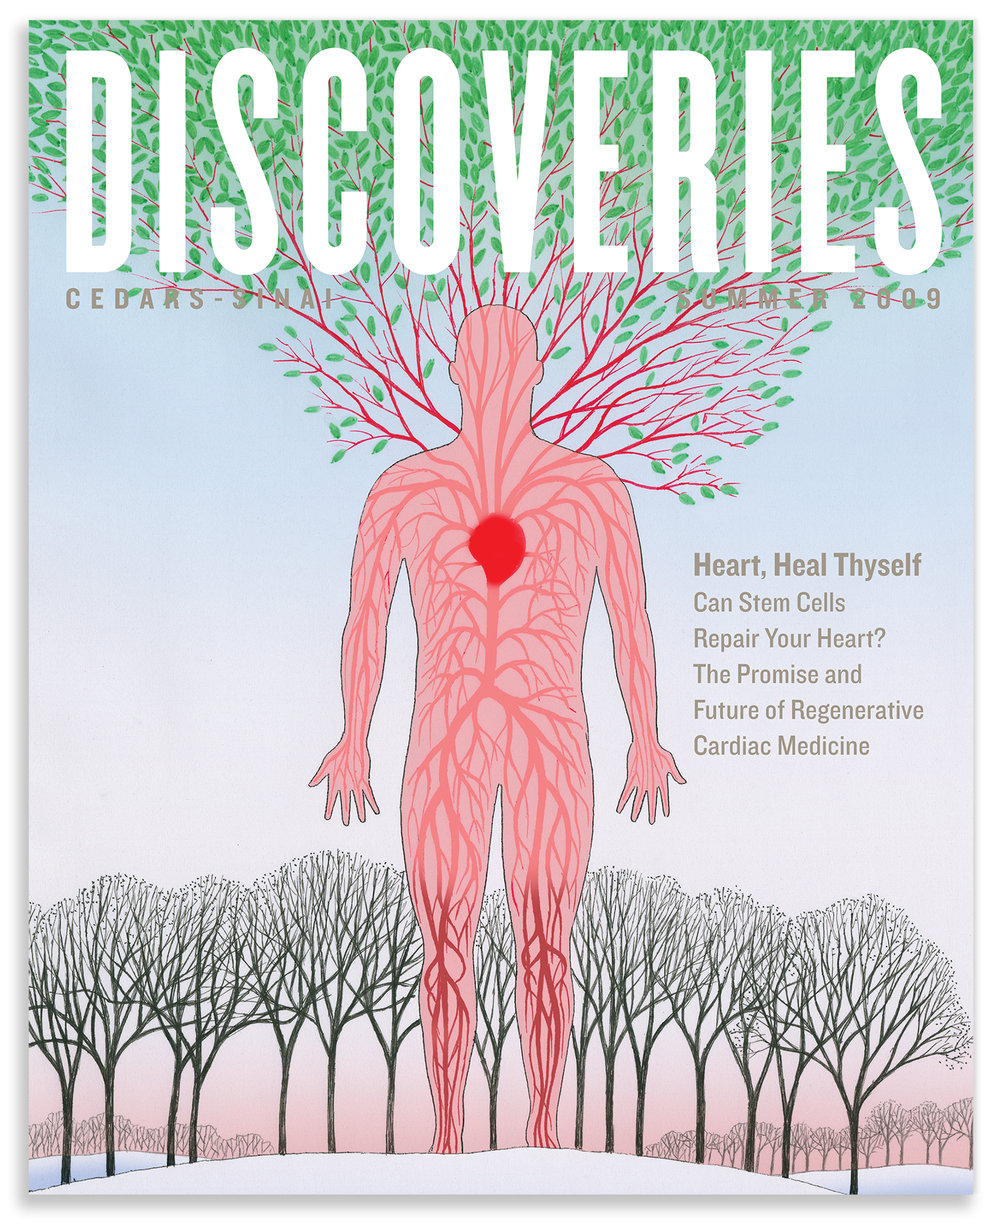 Discoveries, Cedars-Sinai